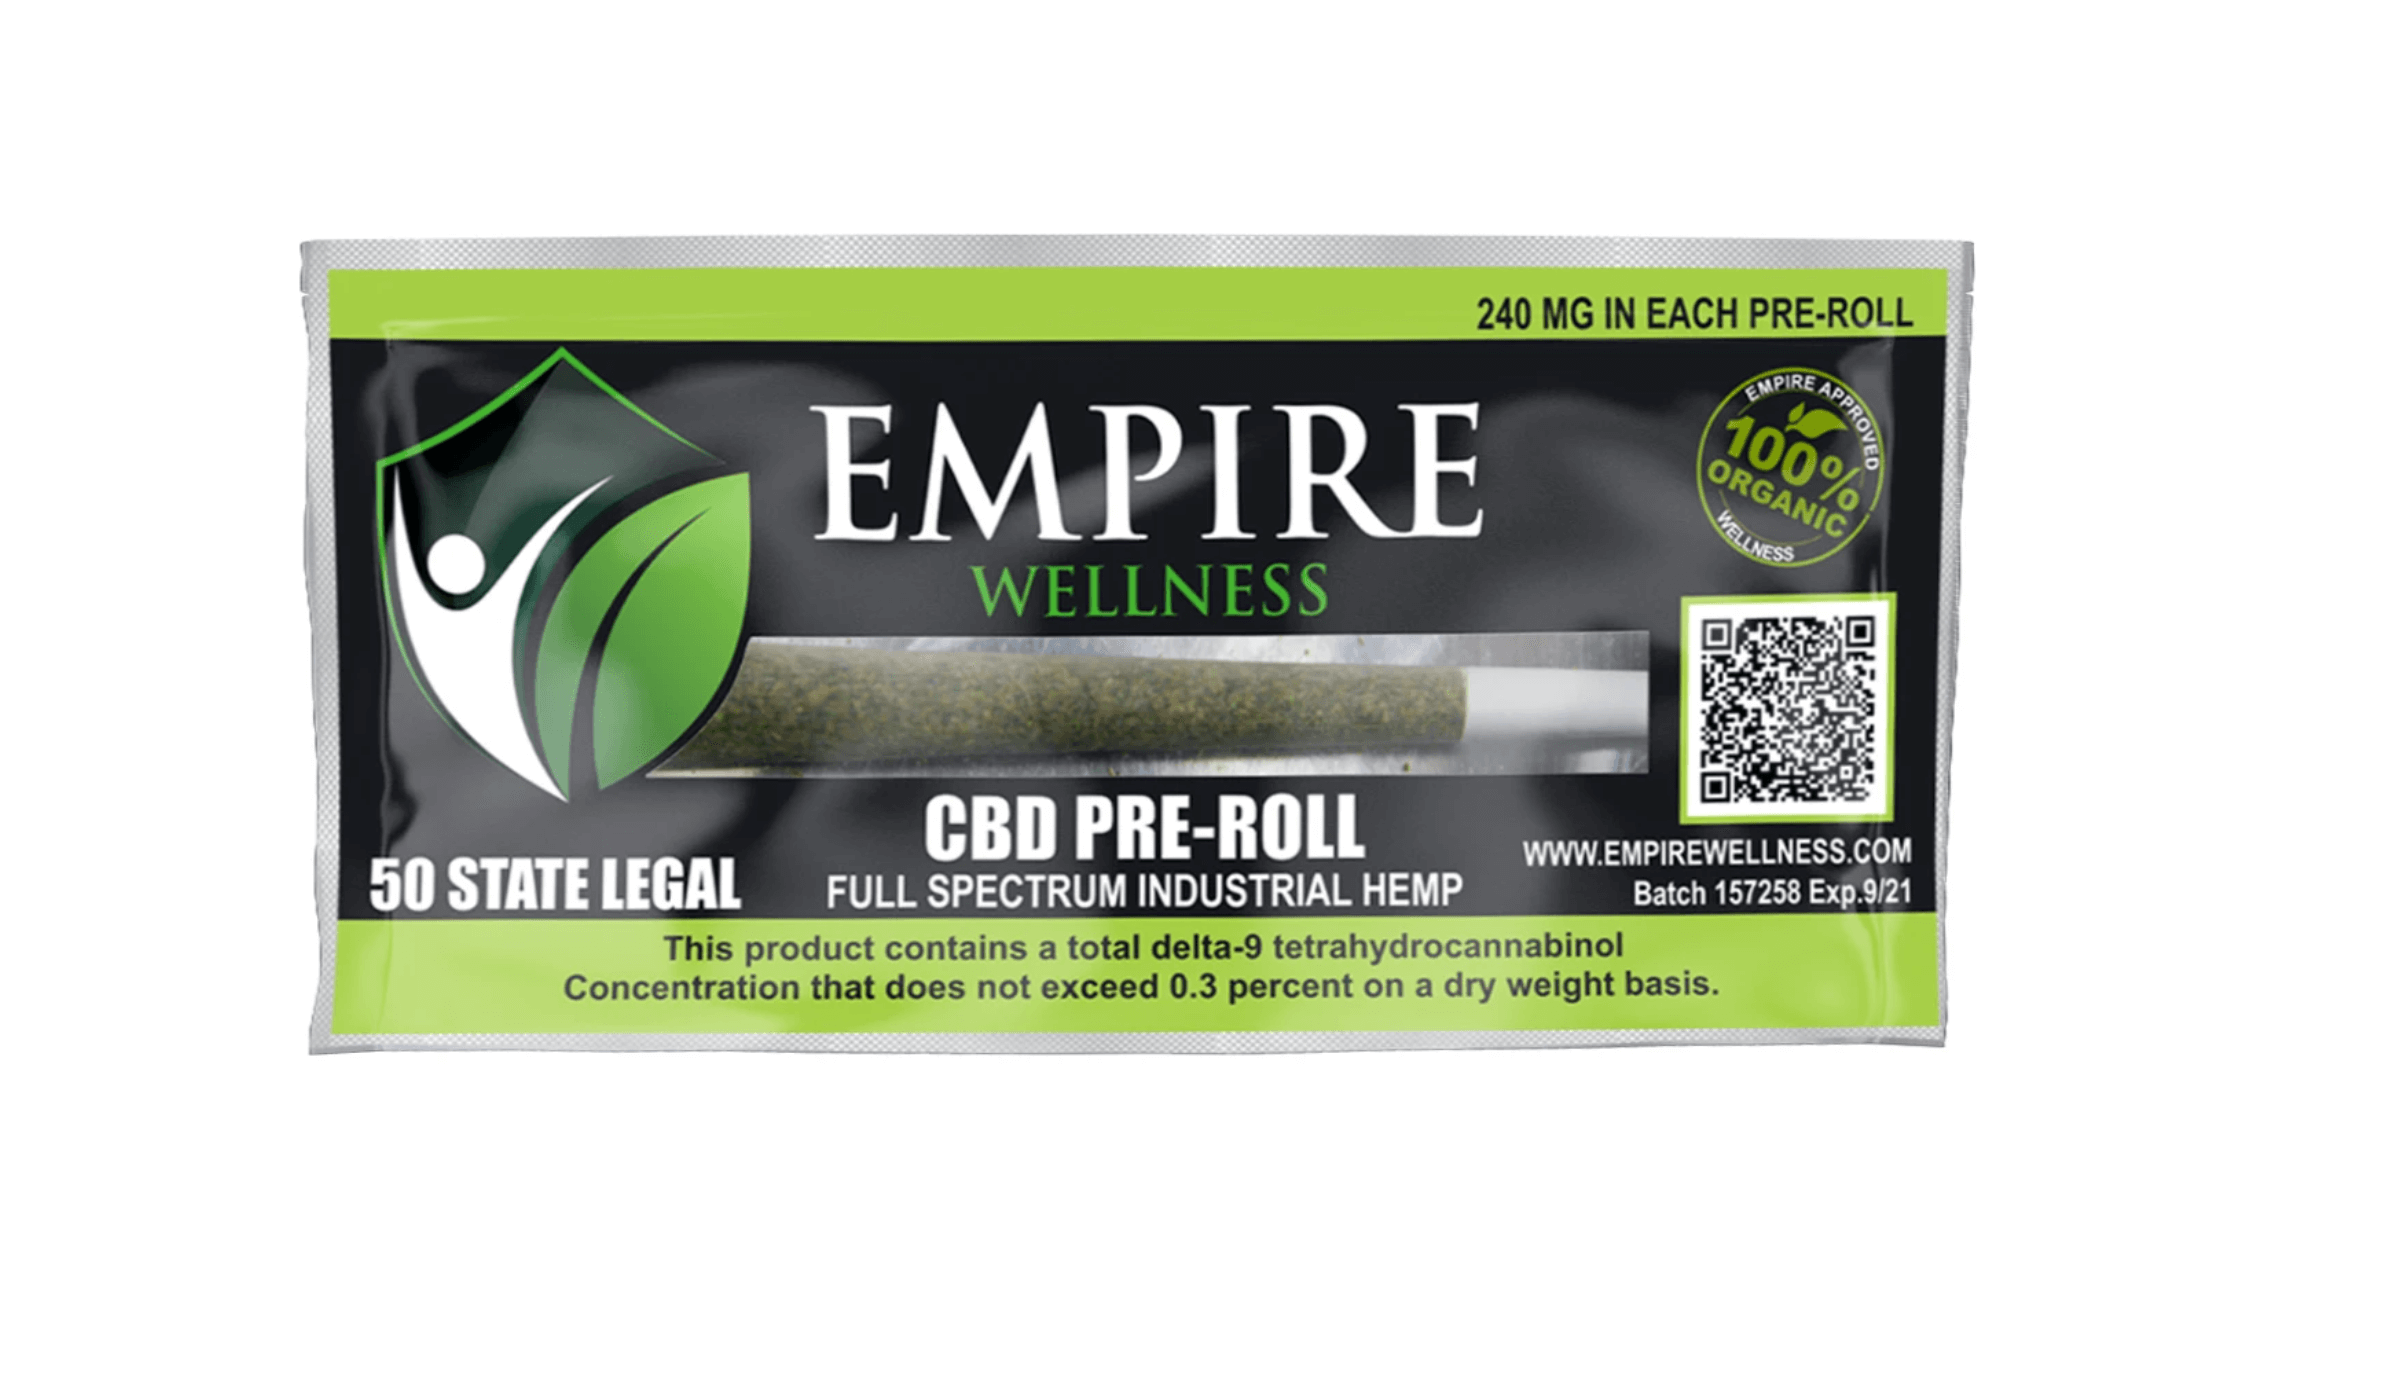 Empire Wellness CBD pre-roll